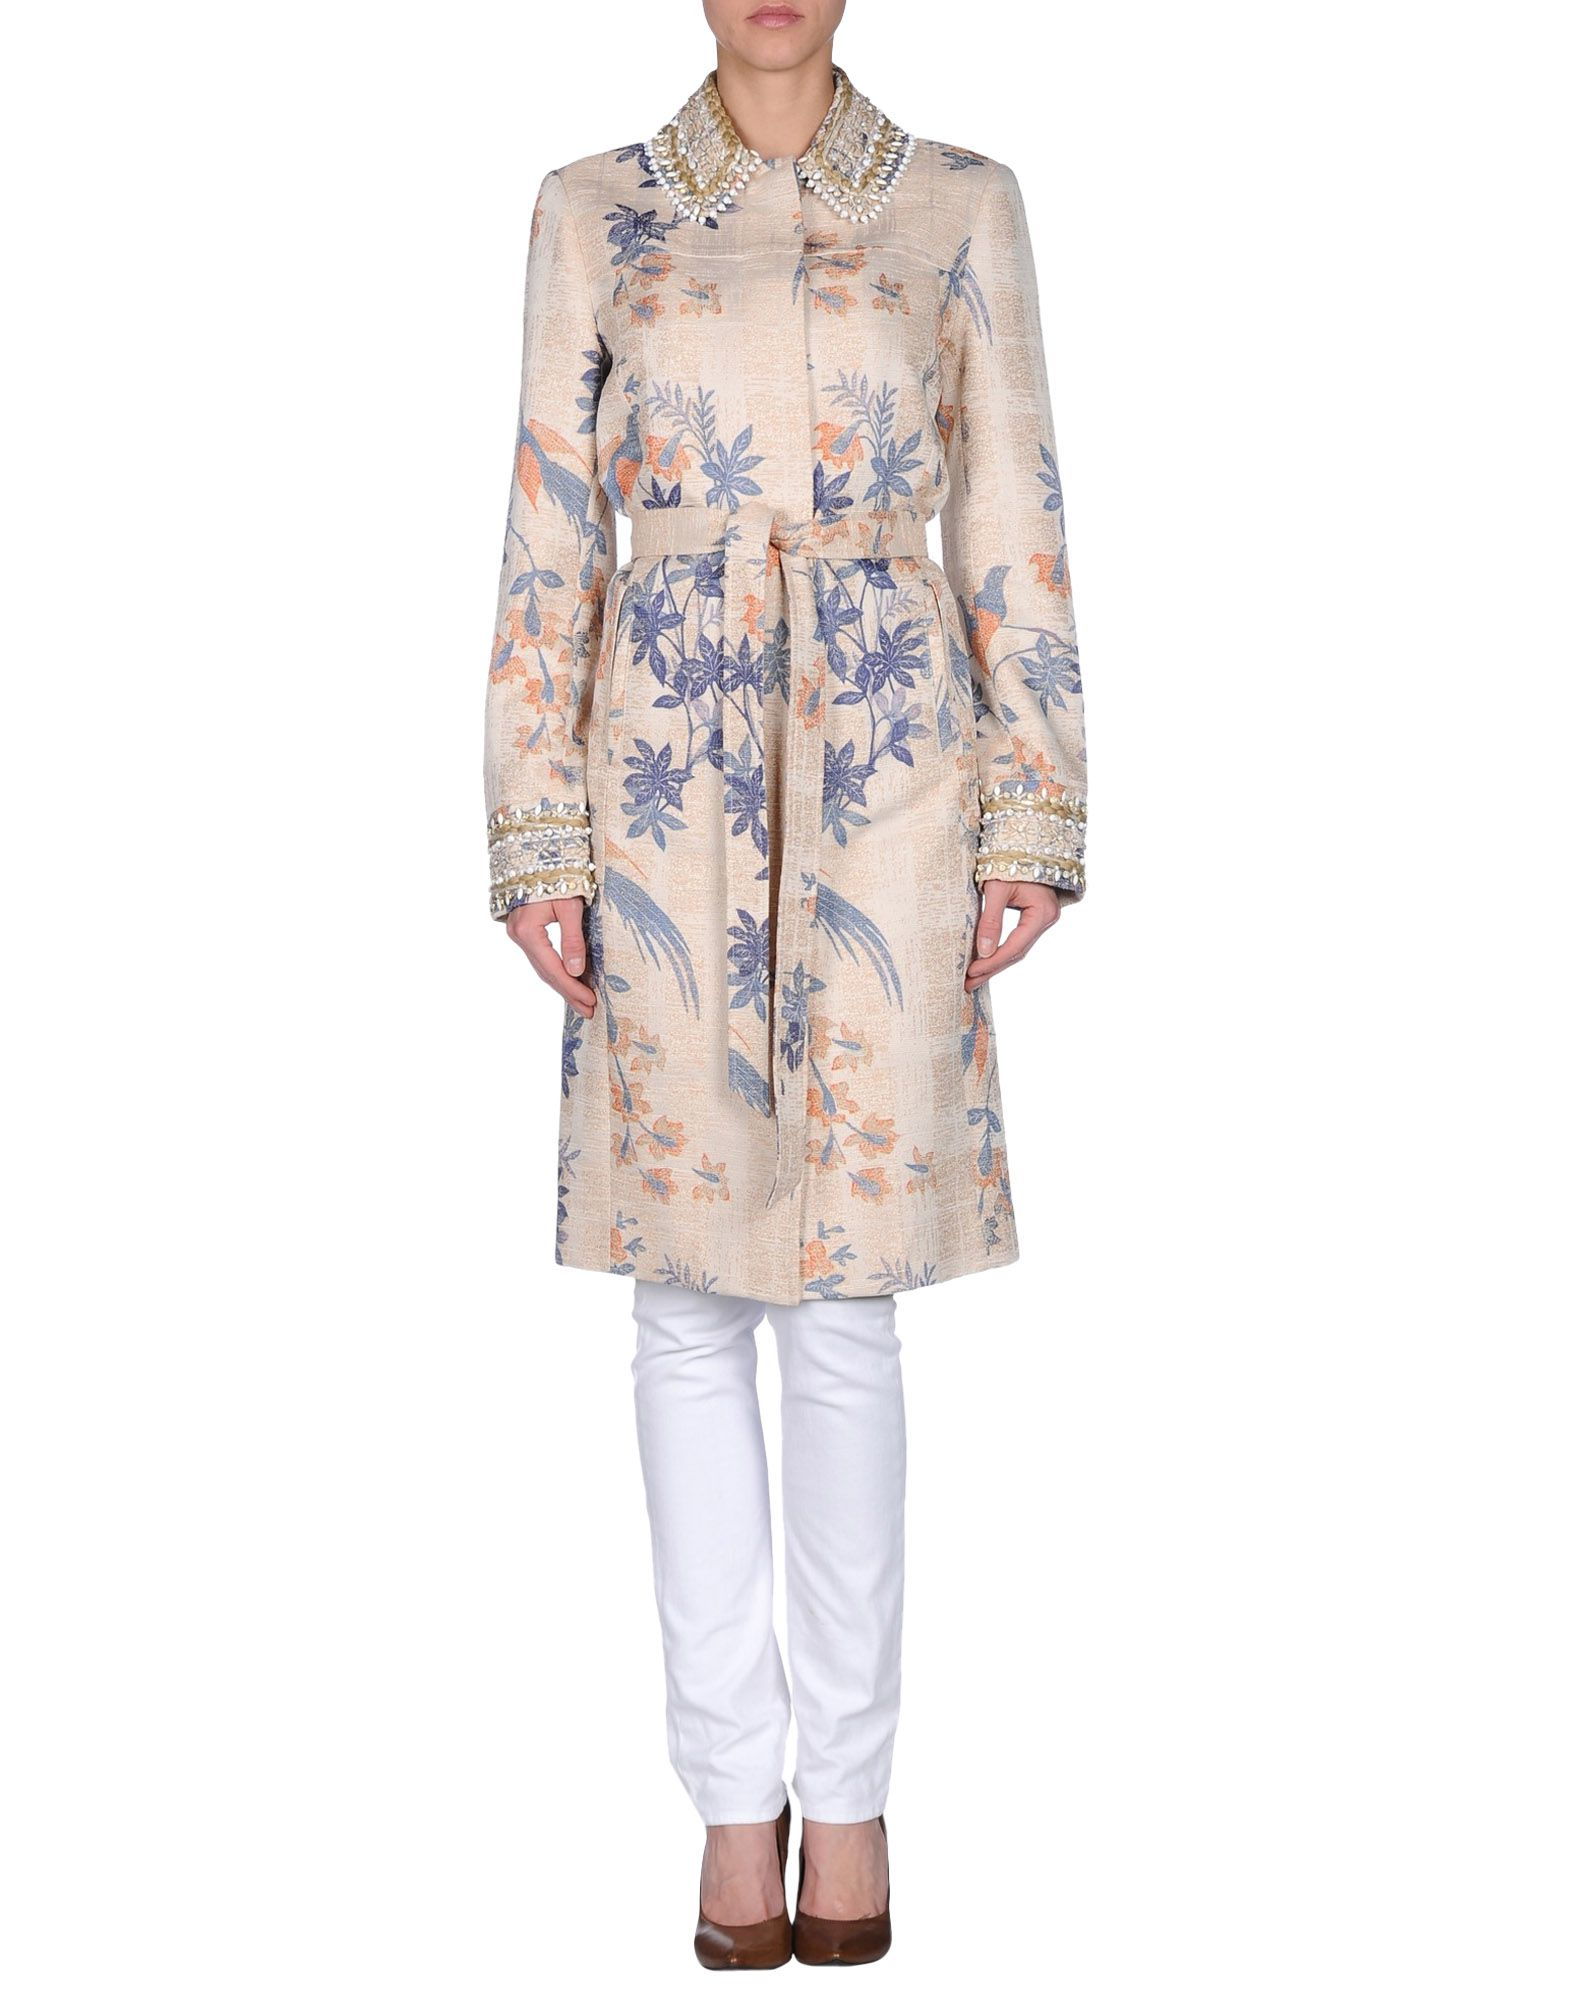 Tory burch full length jacket in natural lyst for Tory burch fashion island